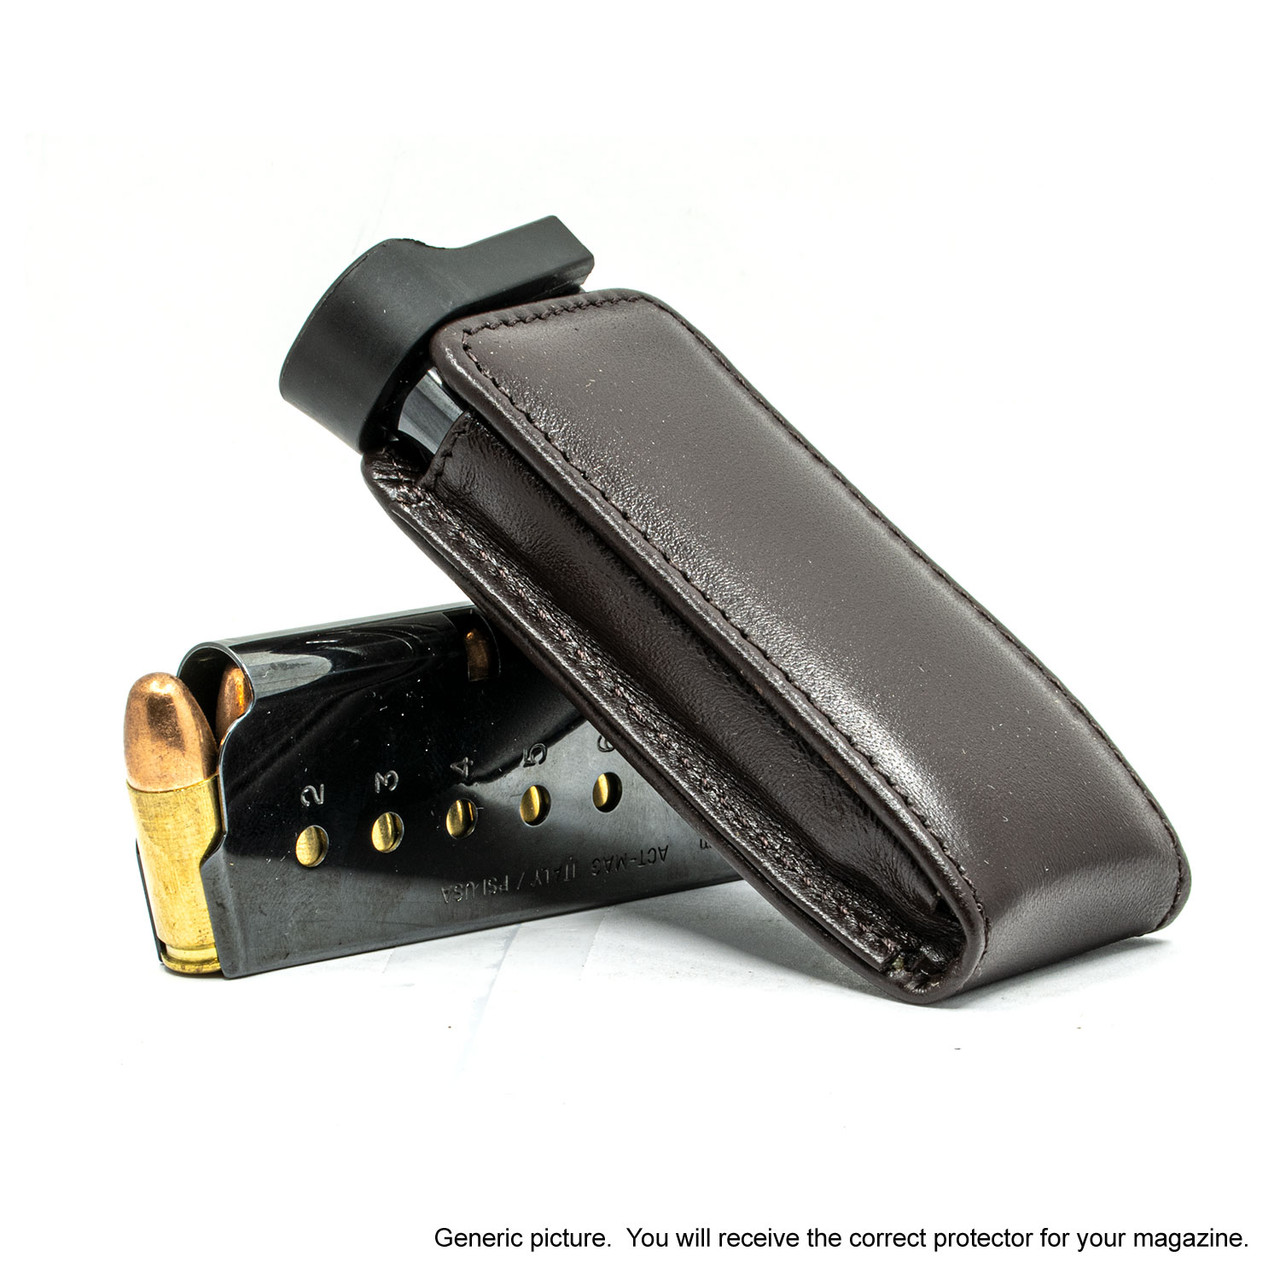 Springfield Micro Compact Brown Leather Magazine Pocket Protector